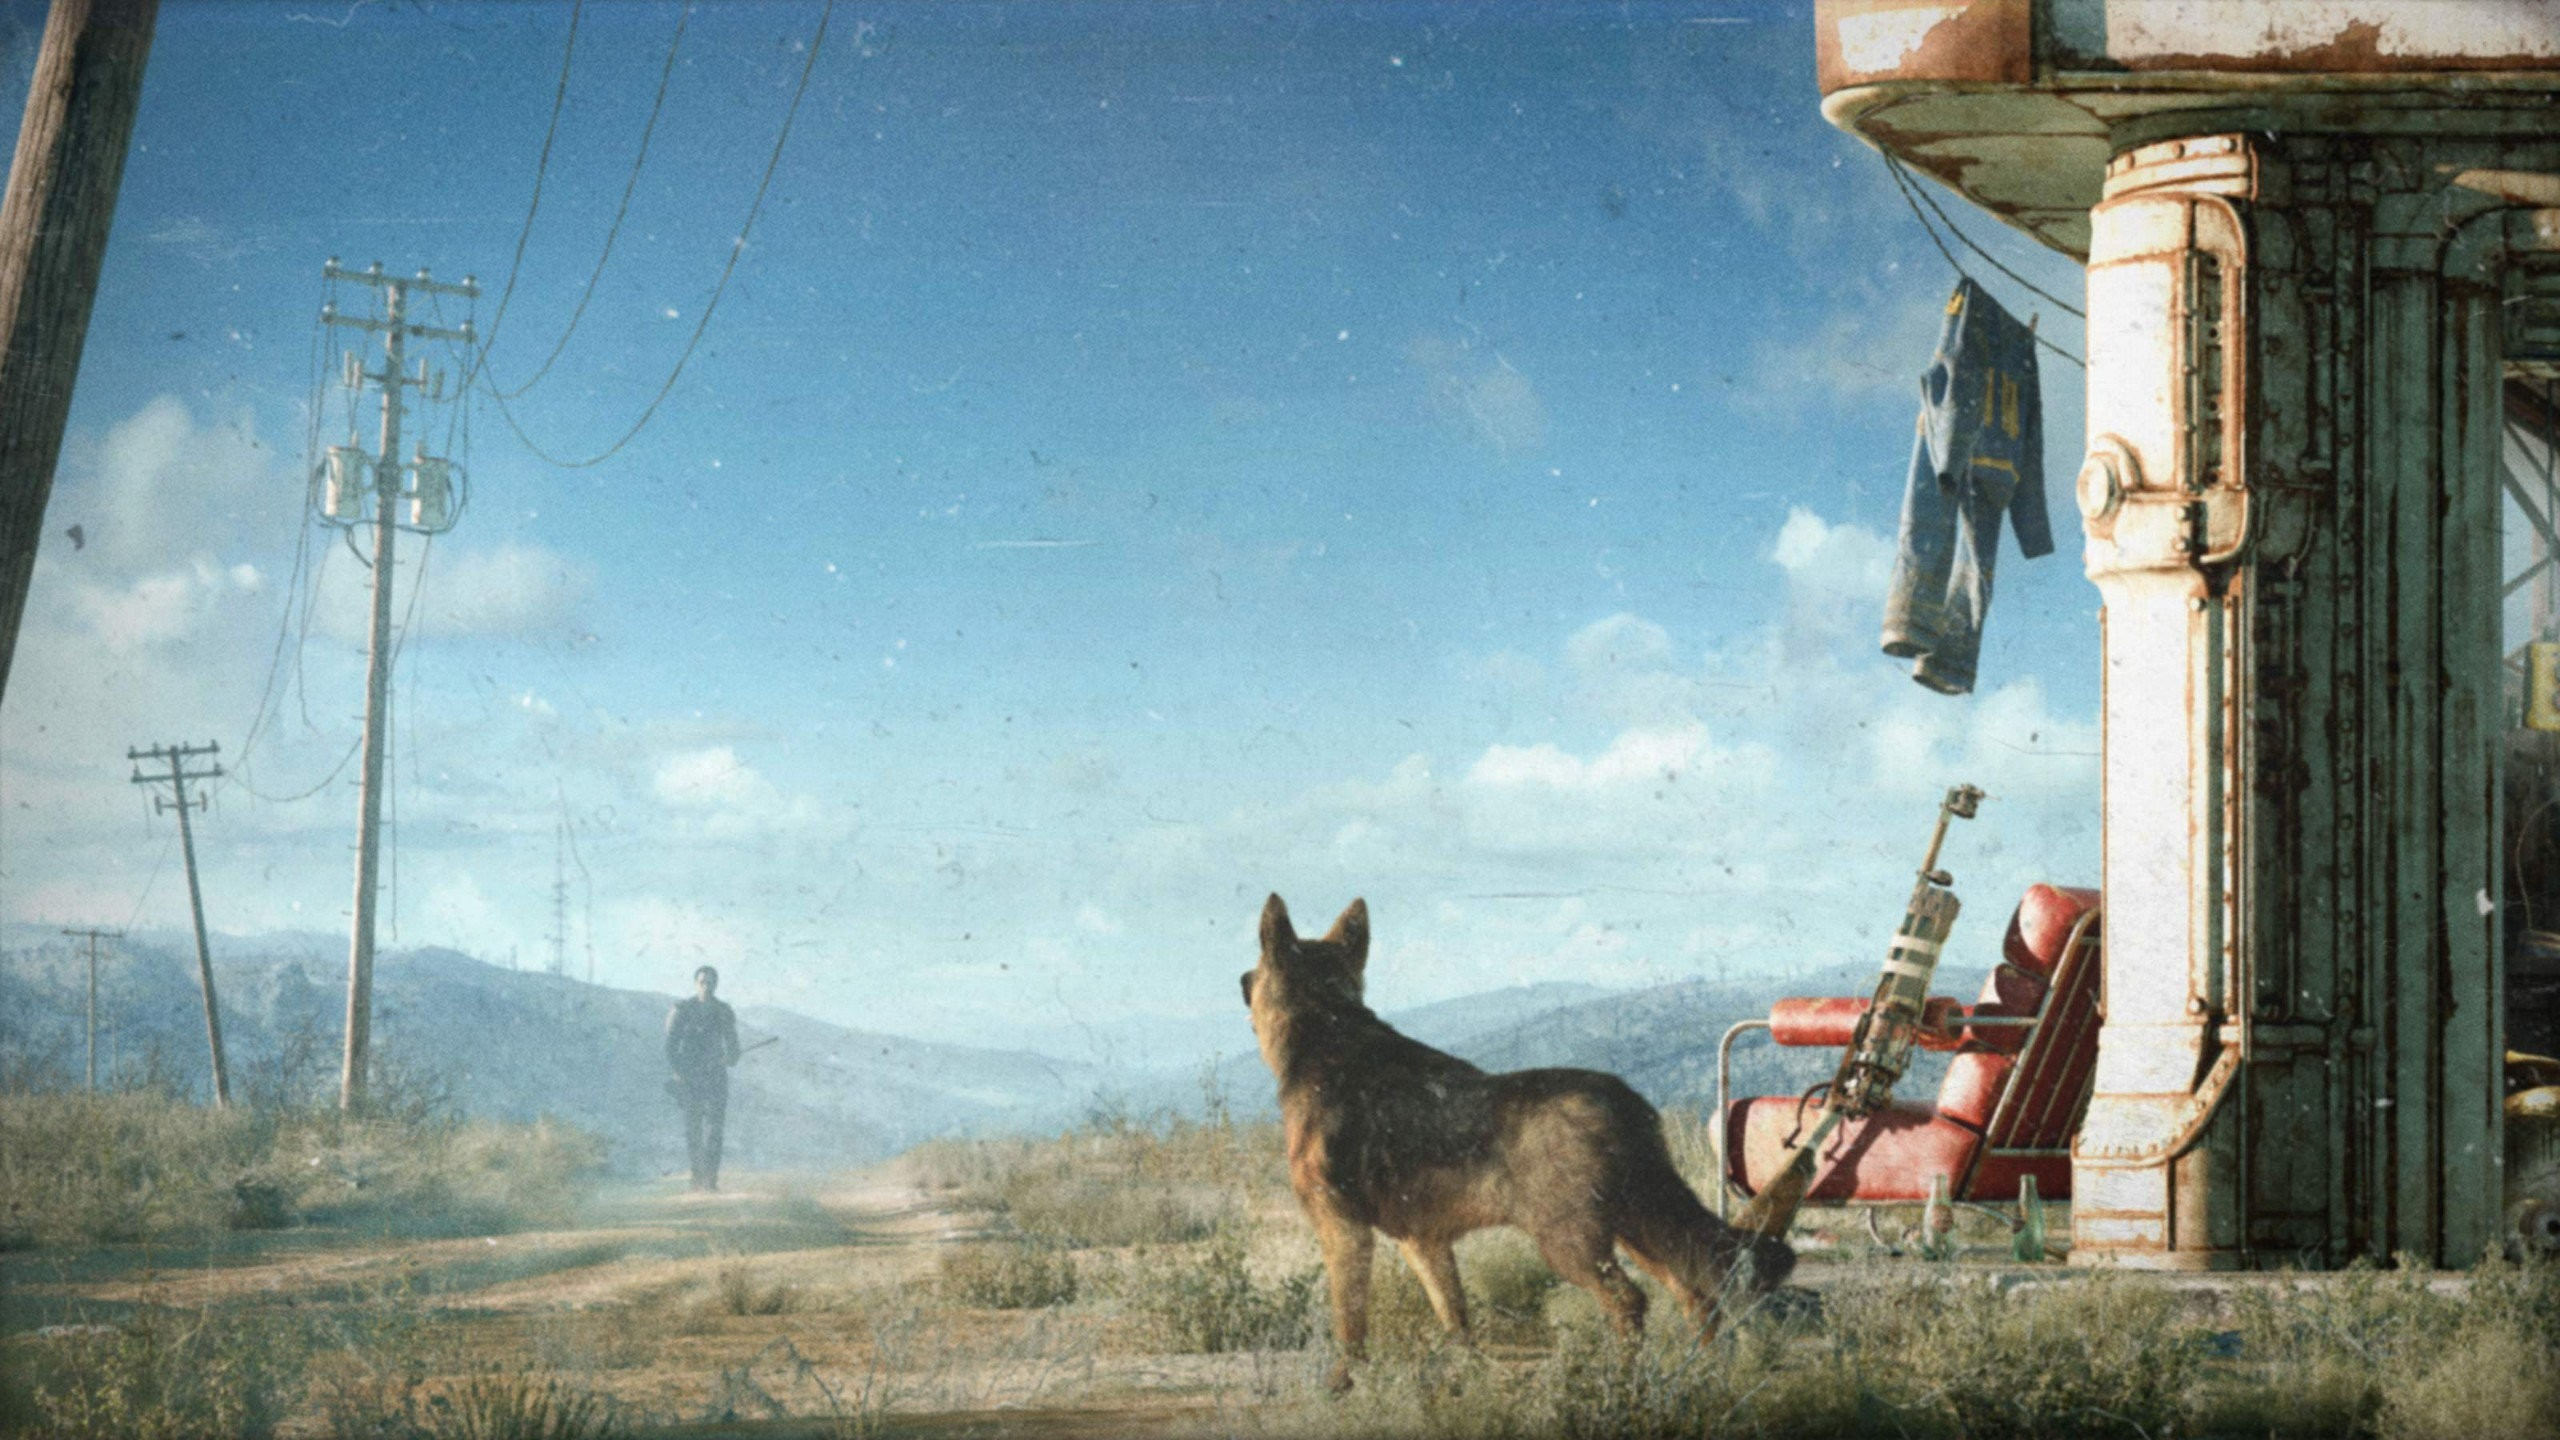 … fallout 4 ps4 wallpapers ps4 home …